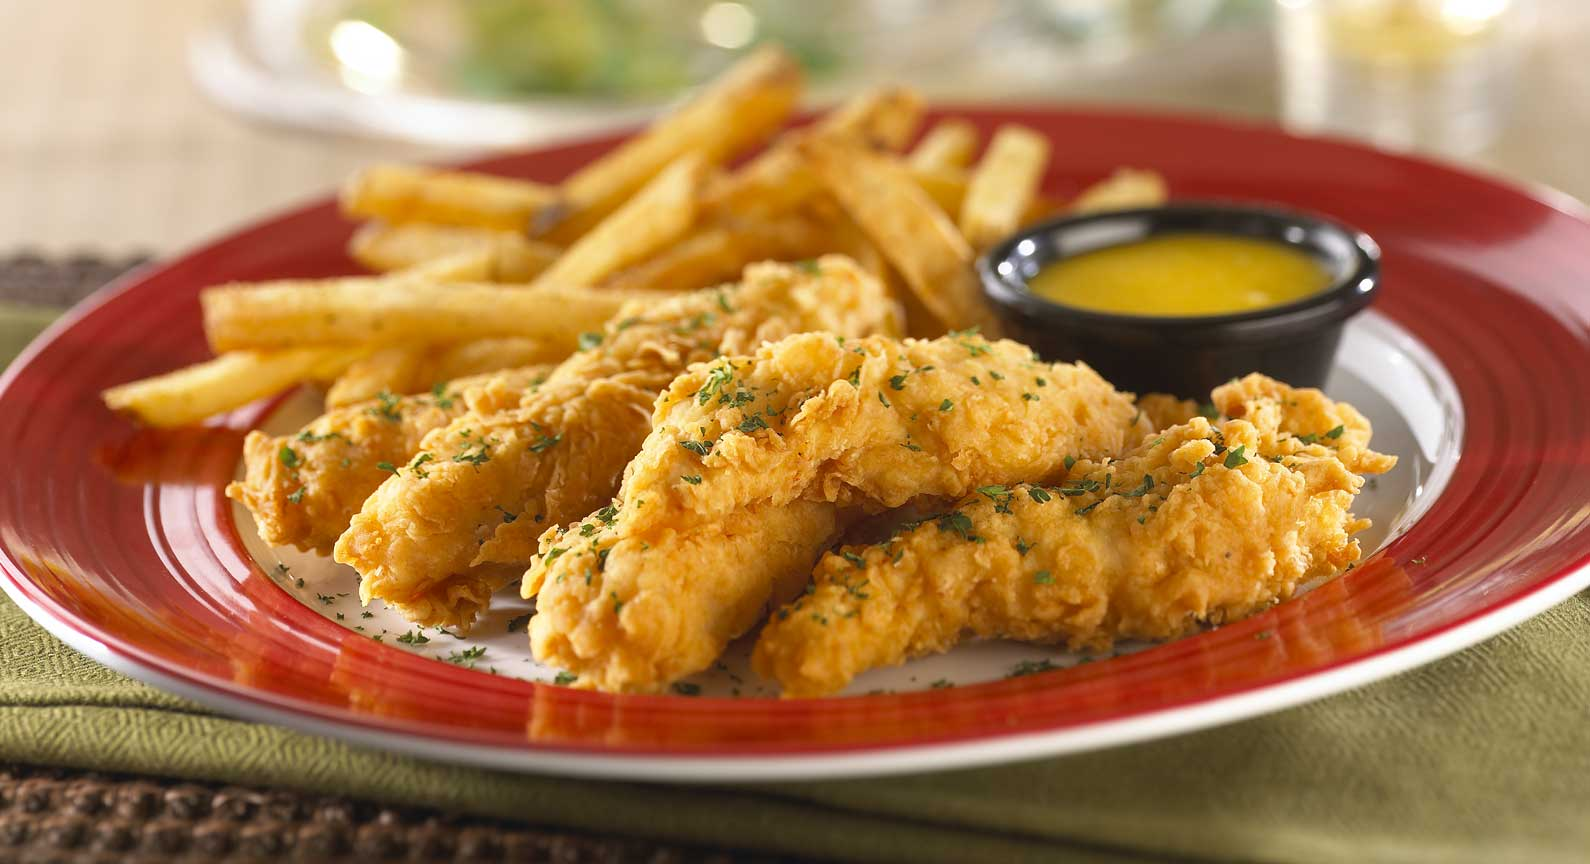 # 1 Favorite Chicken Fingers_Hand battered chicken tenders,